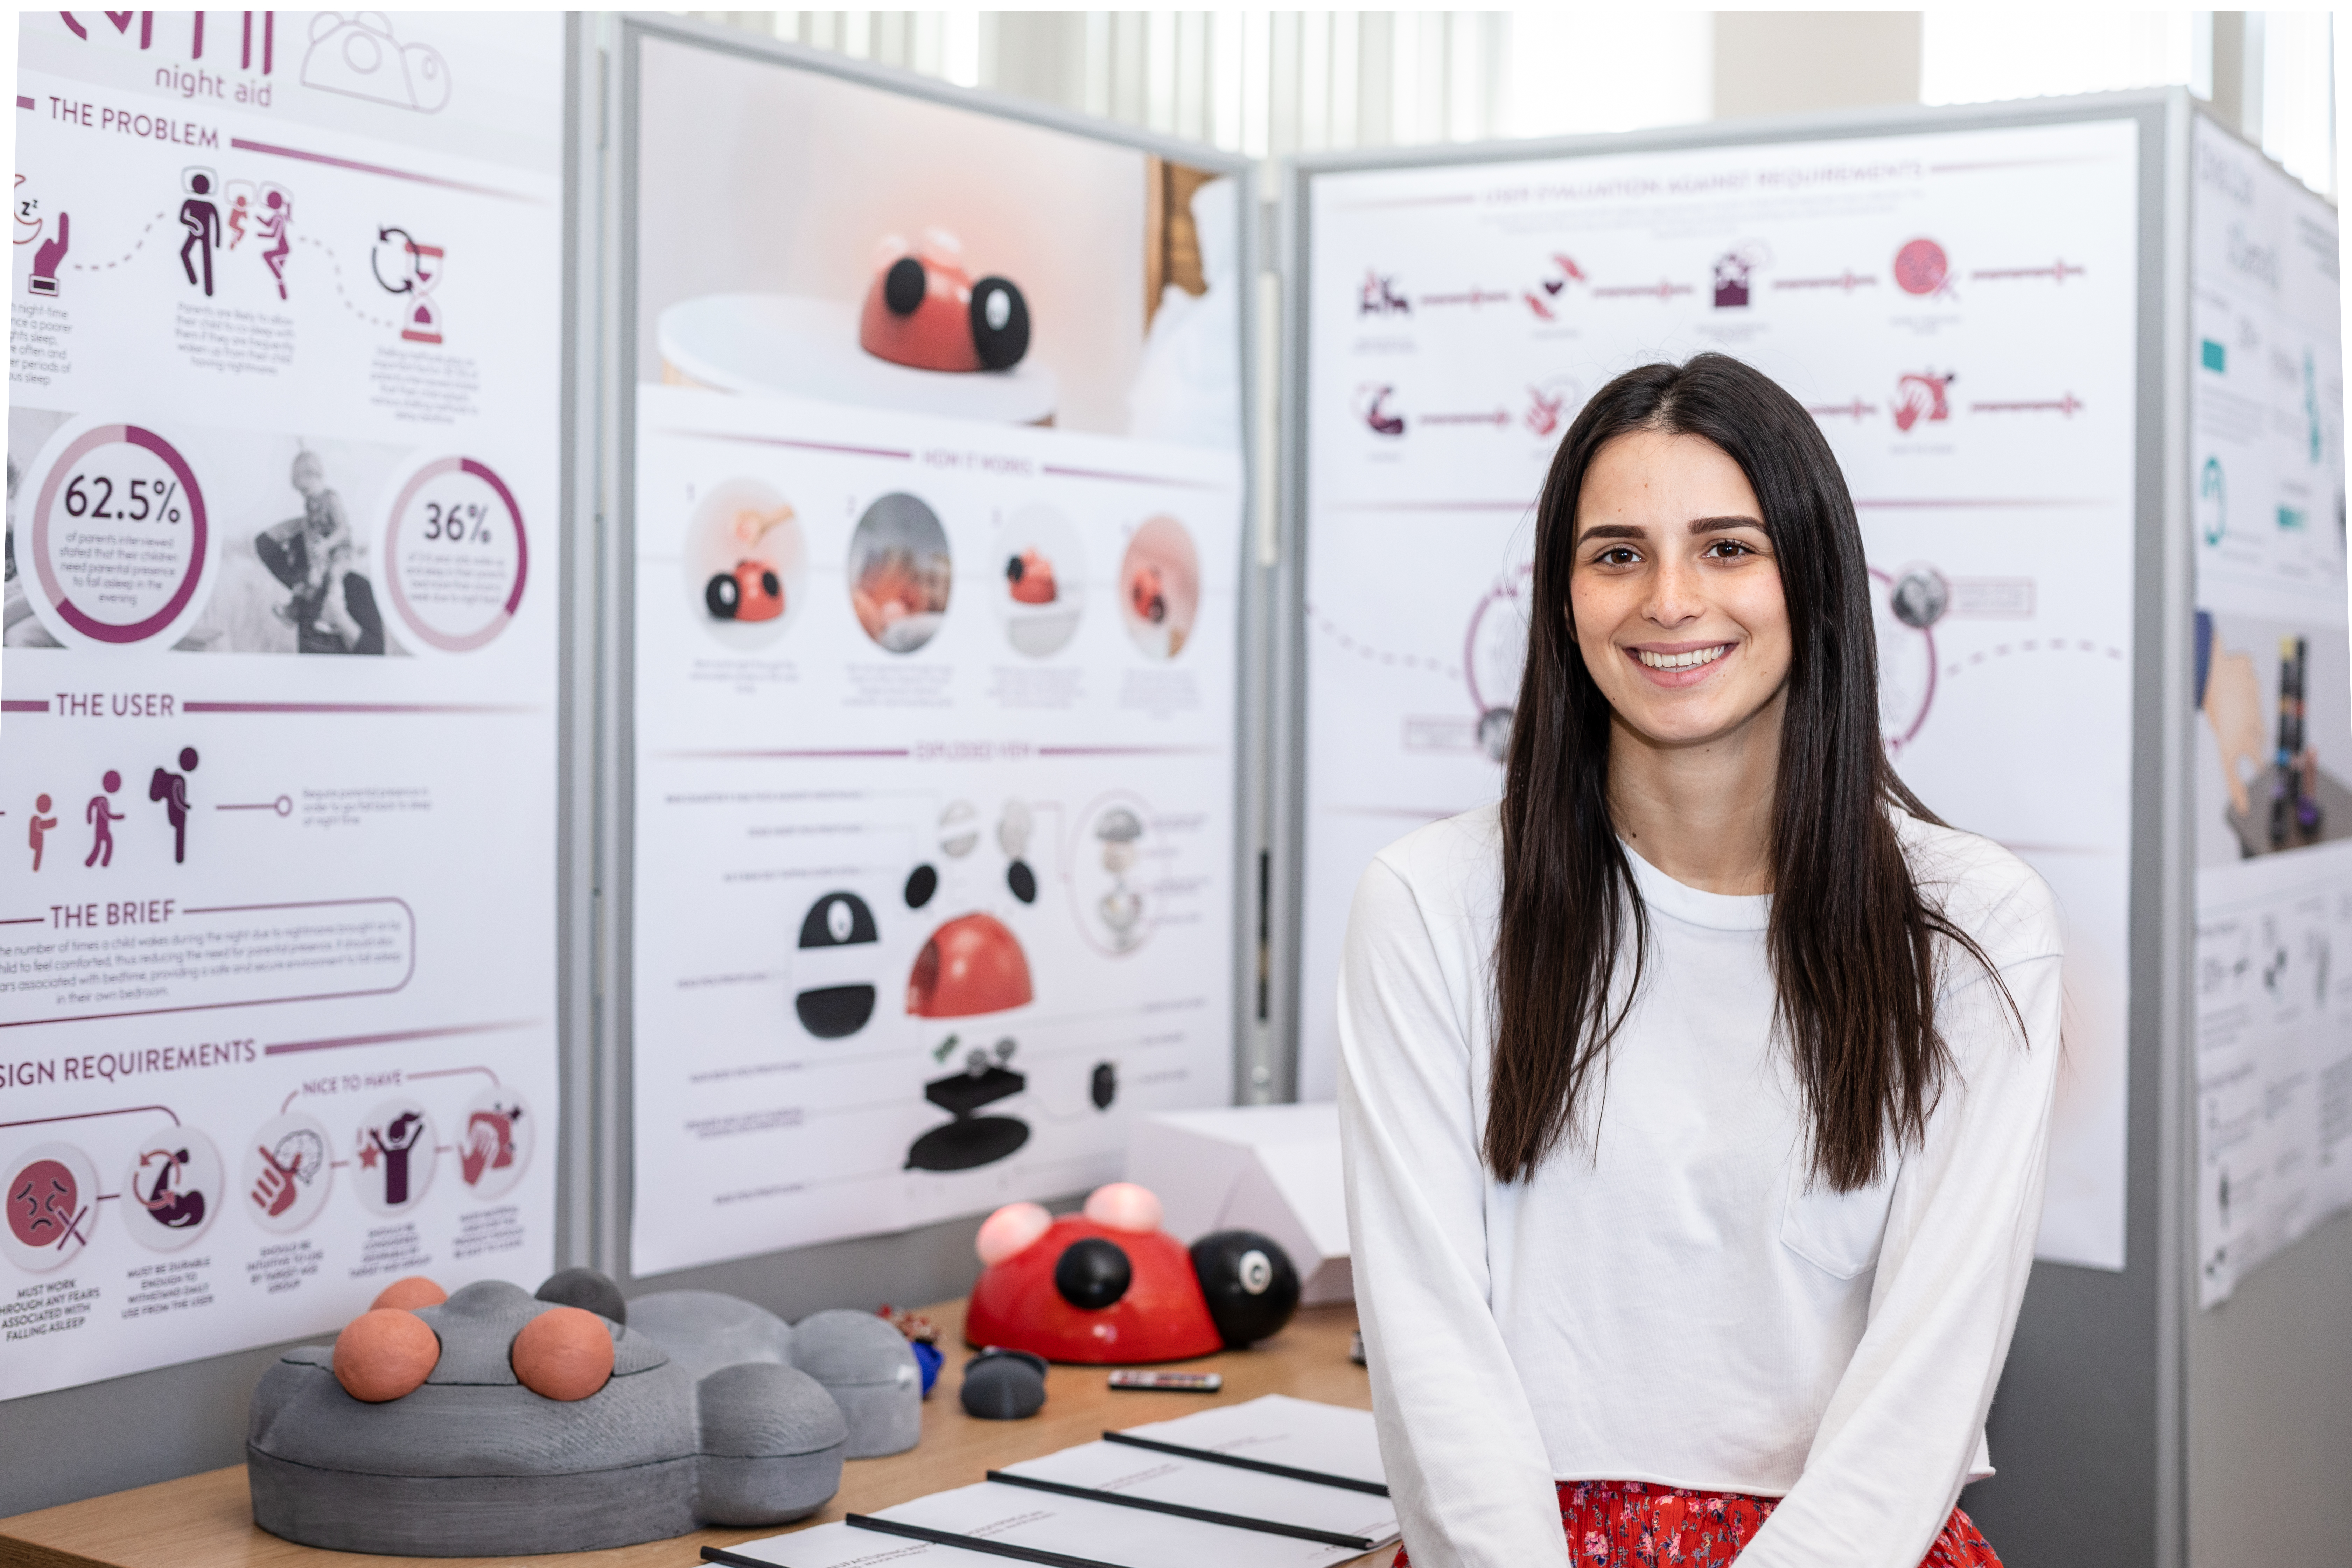 Female product design student with project at showcase